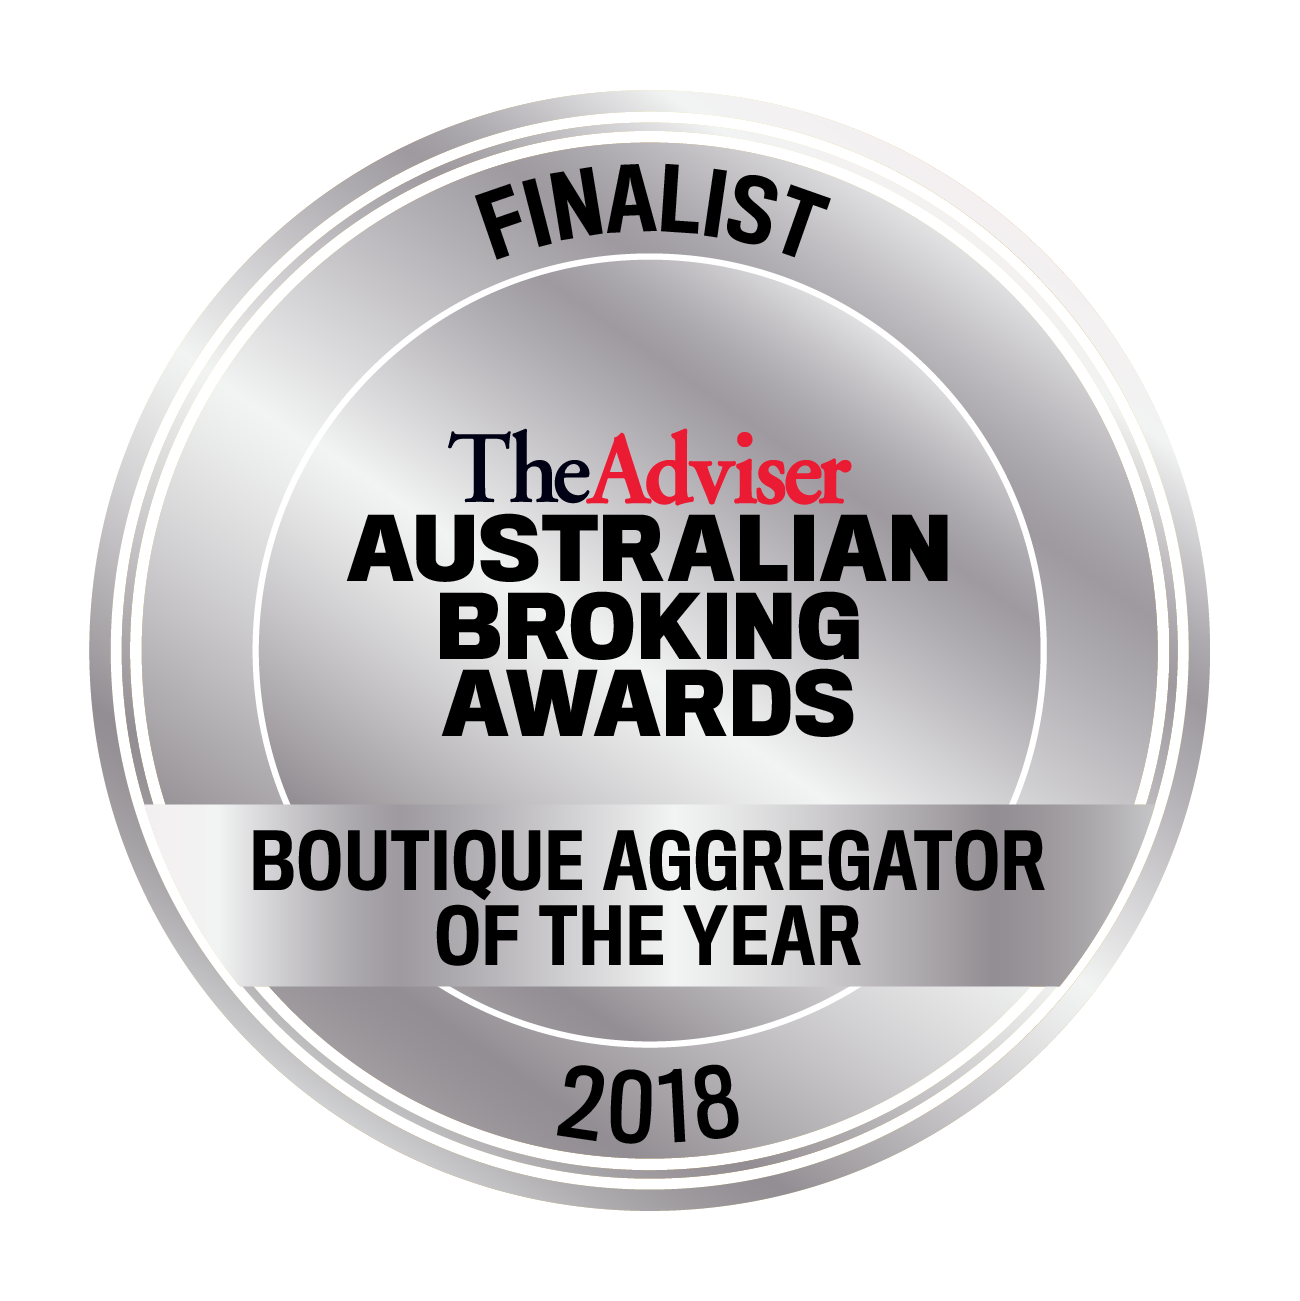 Boutique Aggregator Of The Year Finalist